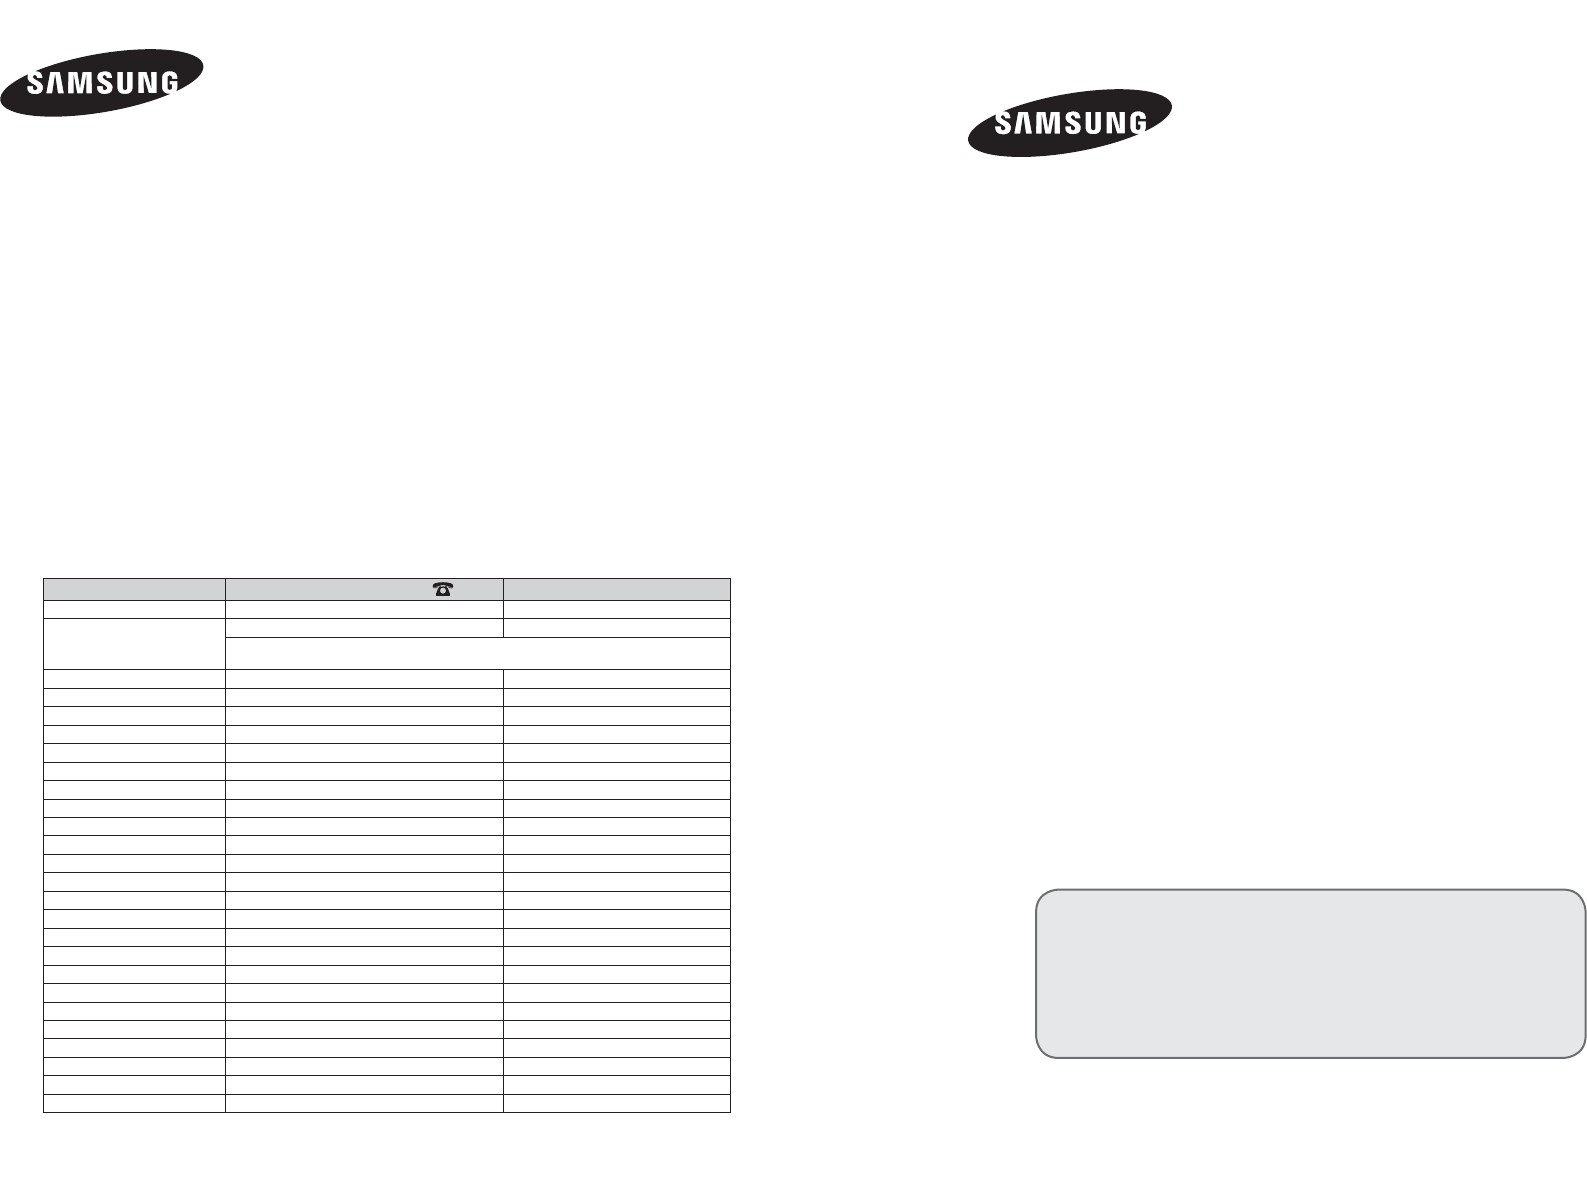 Samsung Flat Panel Television LE32R8 User Guide | ManualsOnline.com